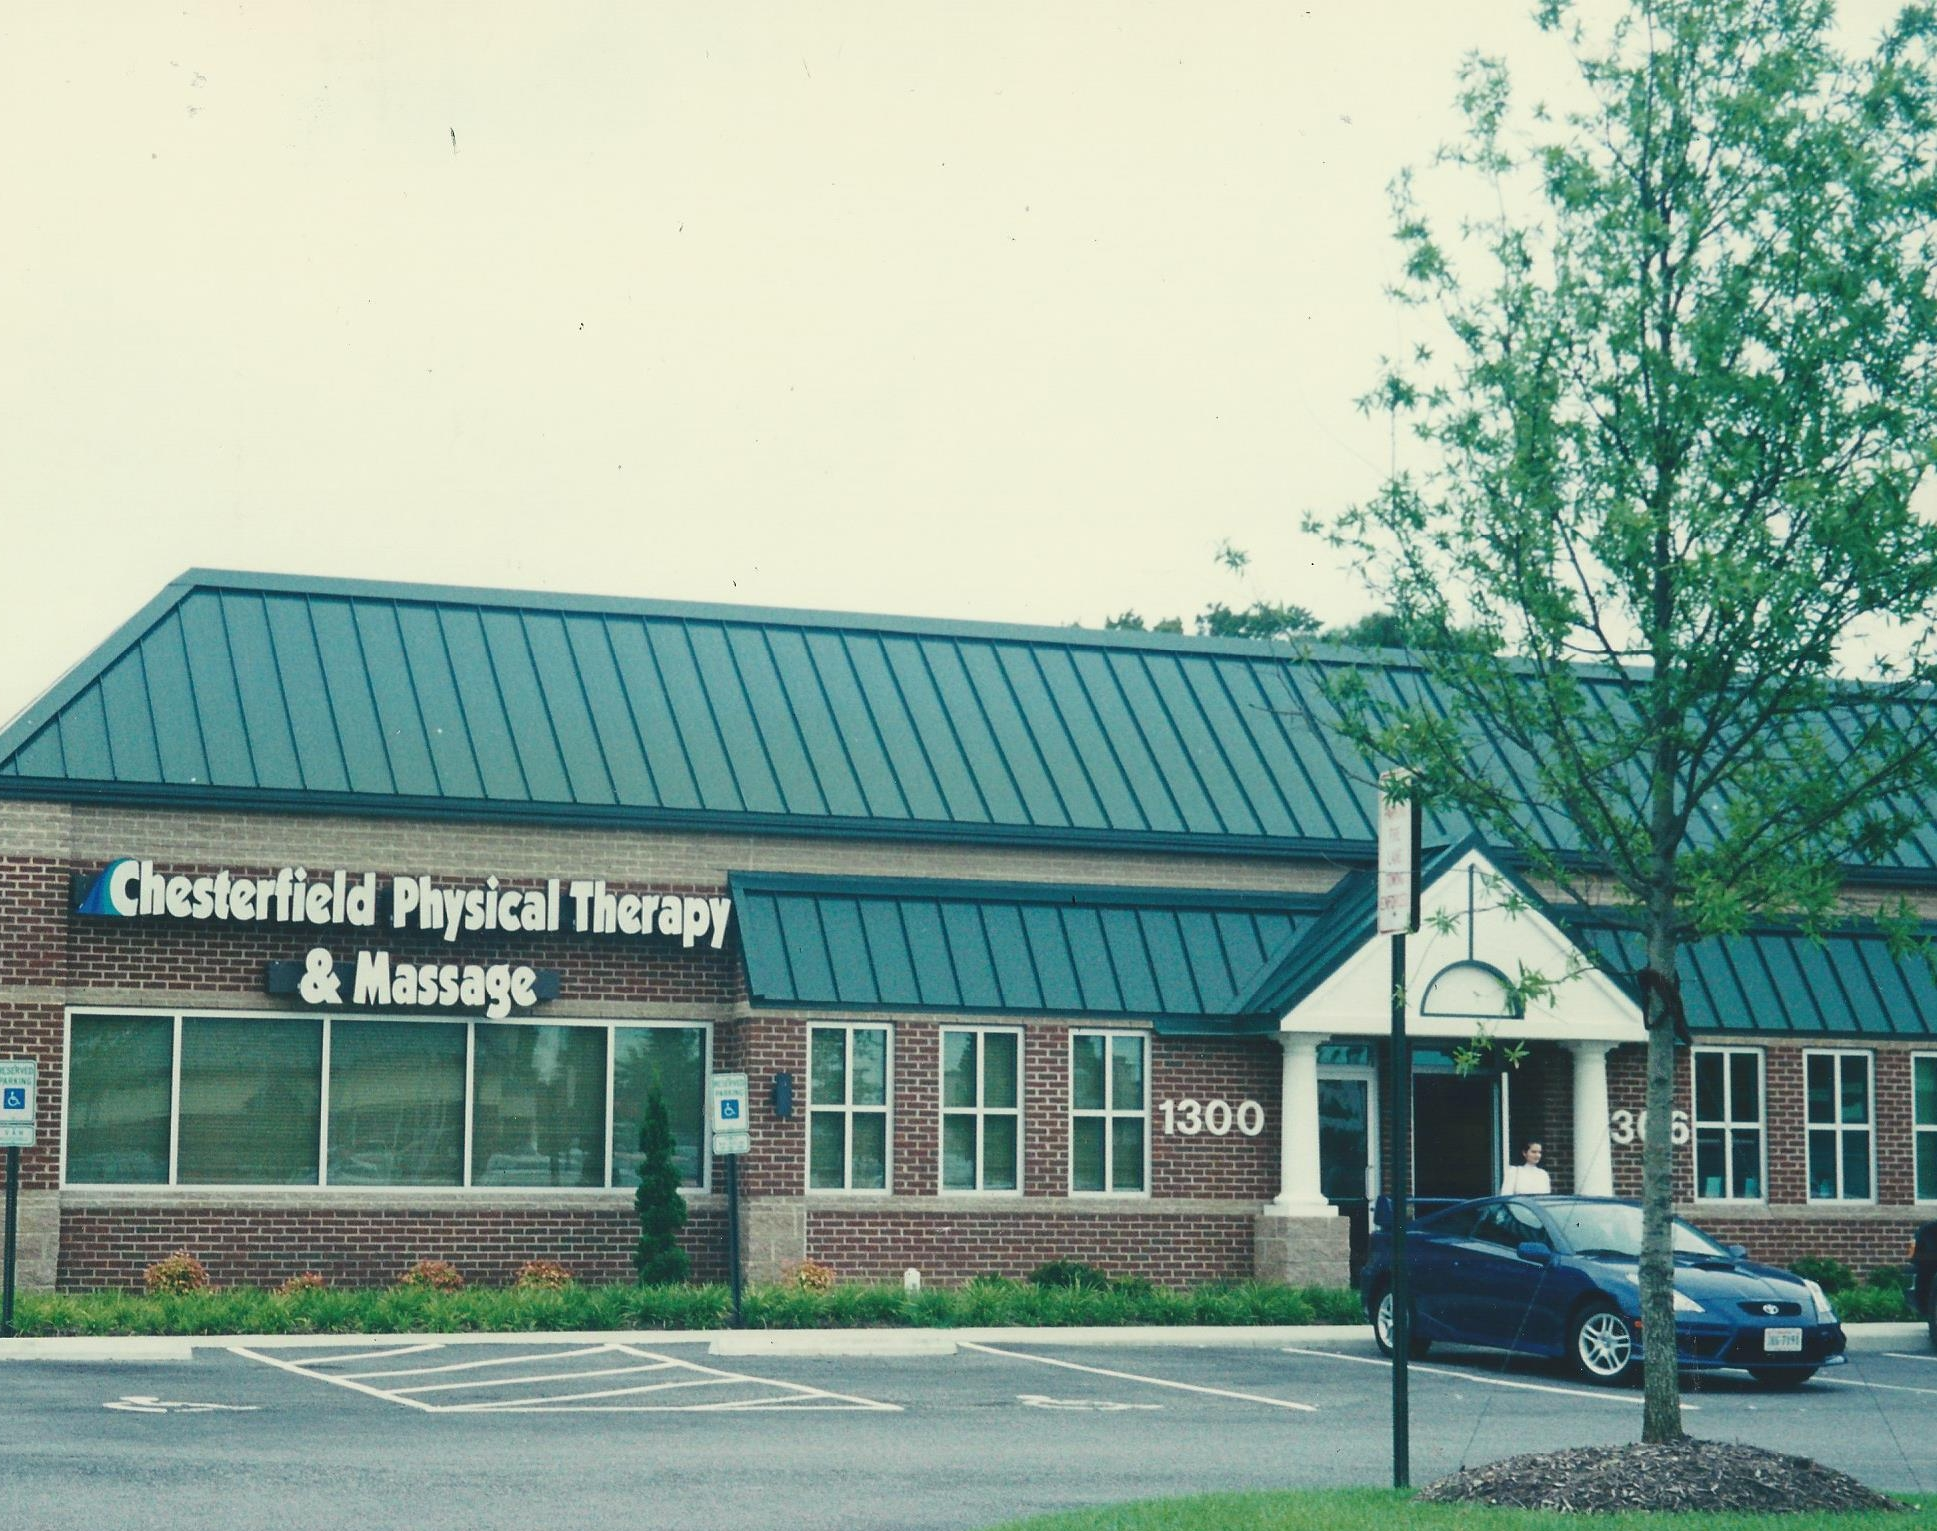 Come to a clinic that cares about you and your goals! - Physical Therapy in Midlothian, chesterfield, Richmond